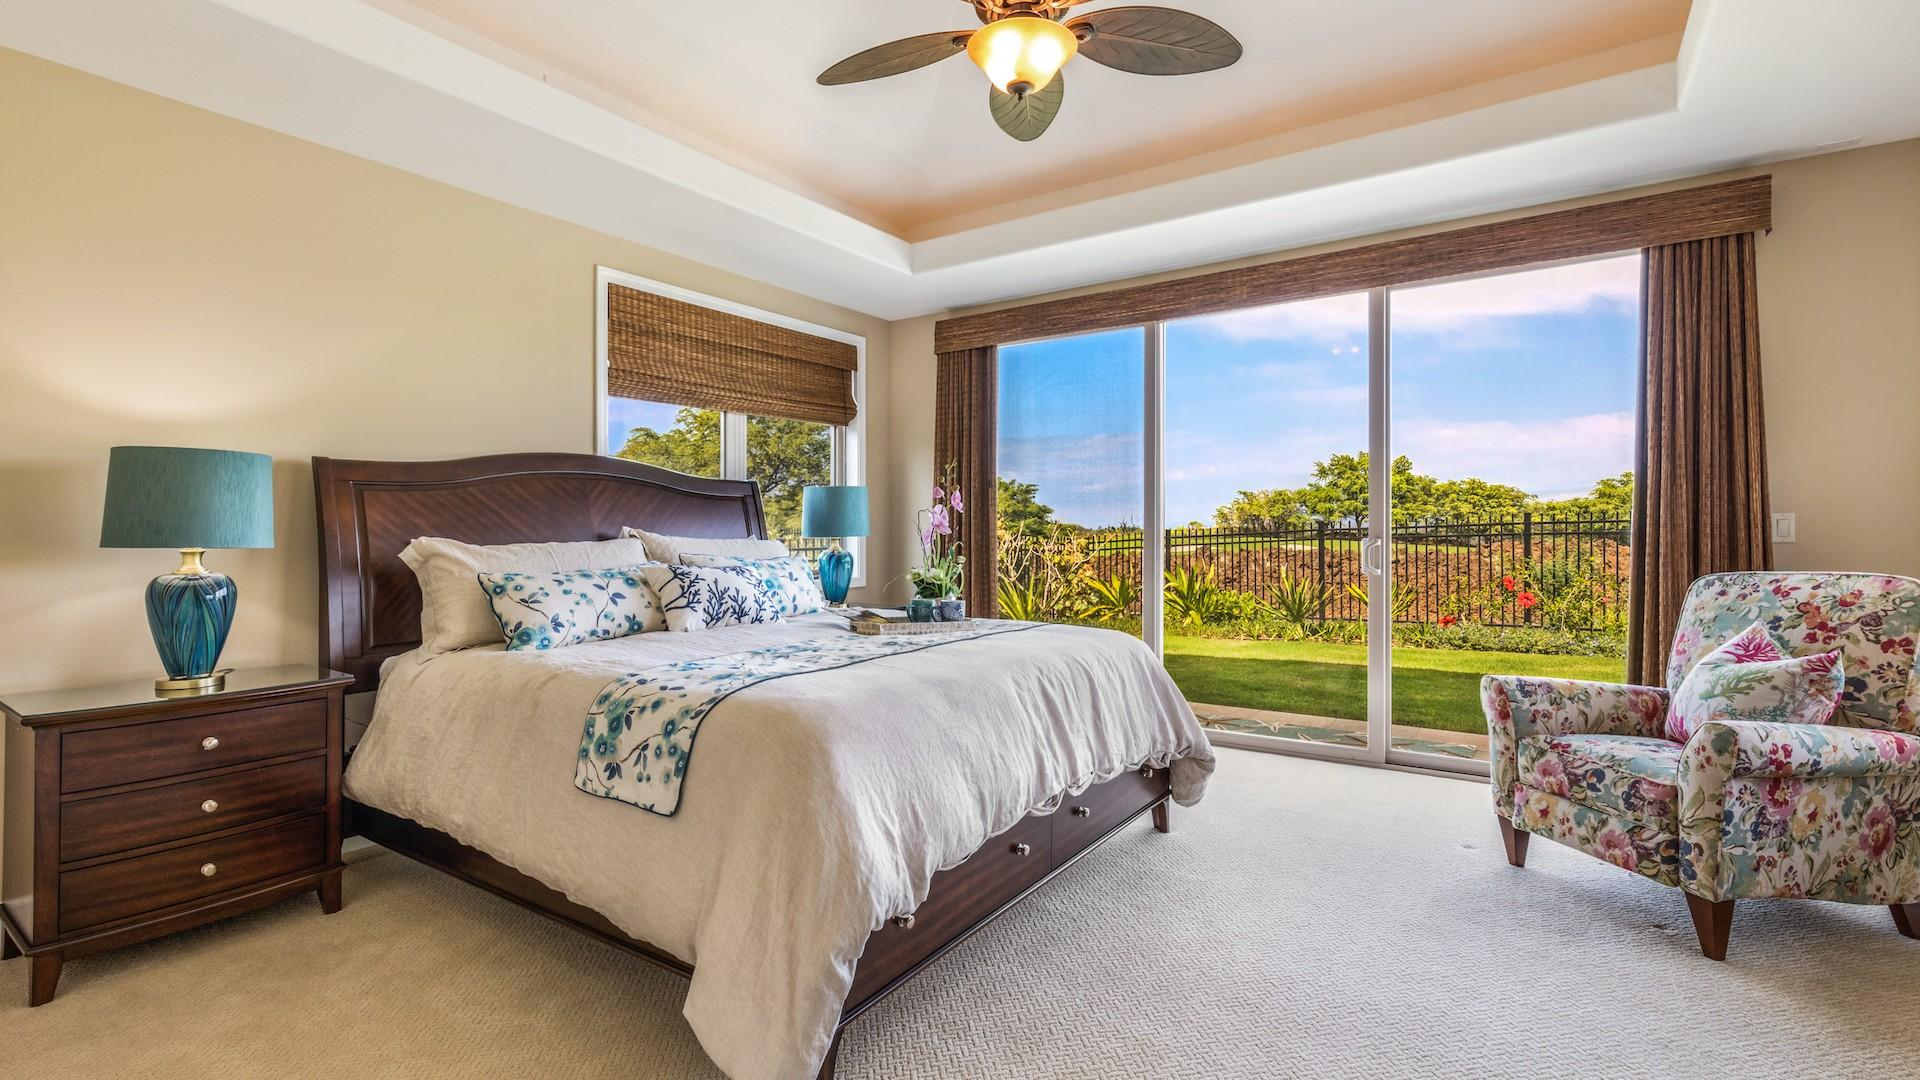 Master bedroom, with king bed, en suite full bath, and floor-to-ceiling pocket doors that open to the lanai.